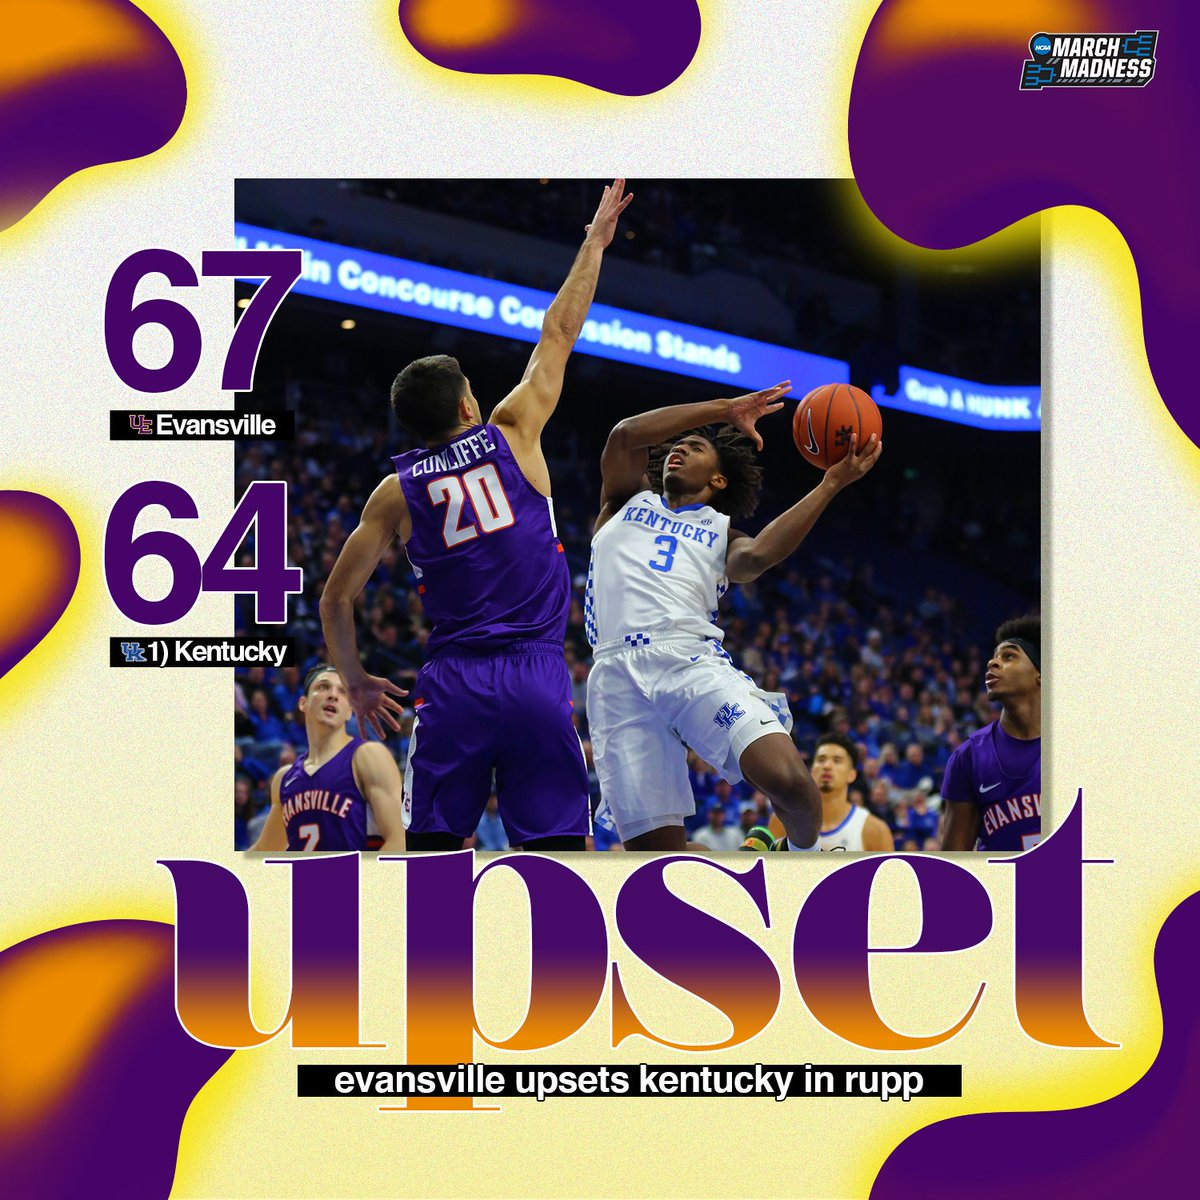 DOWN GOES NO. 1!   Evansville takes down No.1 Kentucky in Rupp Arena! #ForTheAces<br>http://pic.twitter.com/bUNqU6LSSb